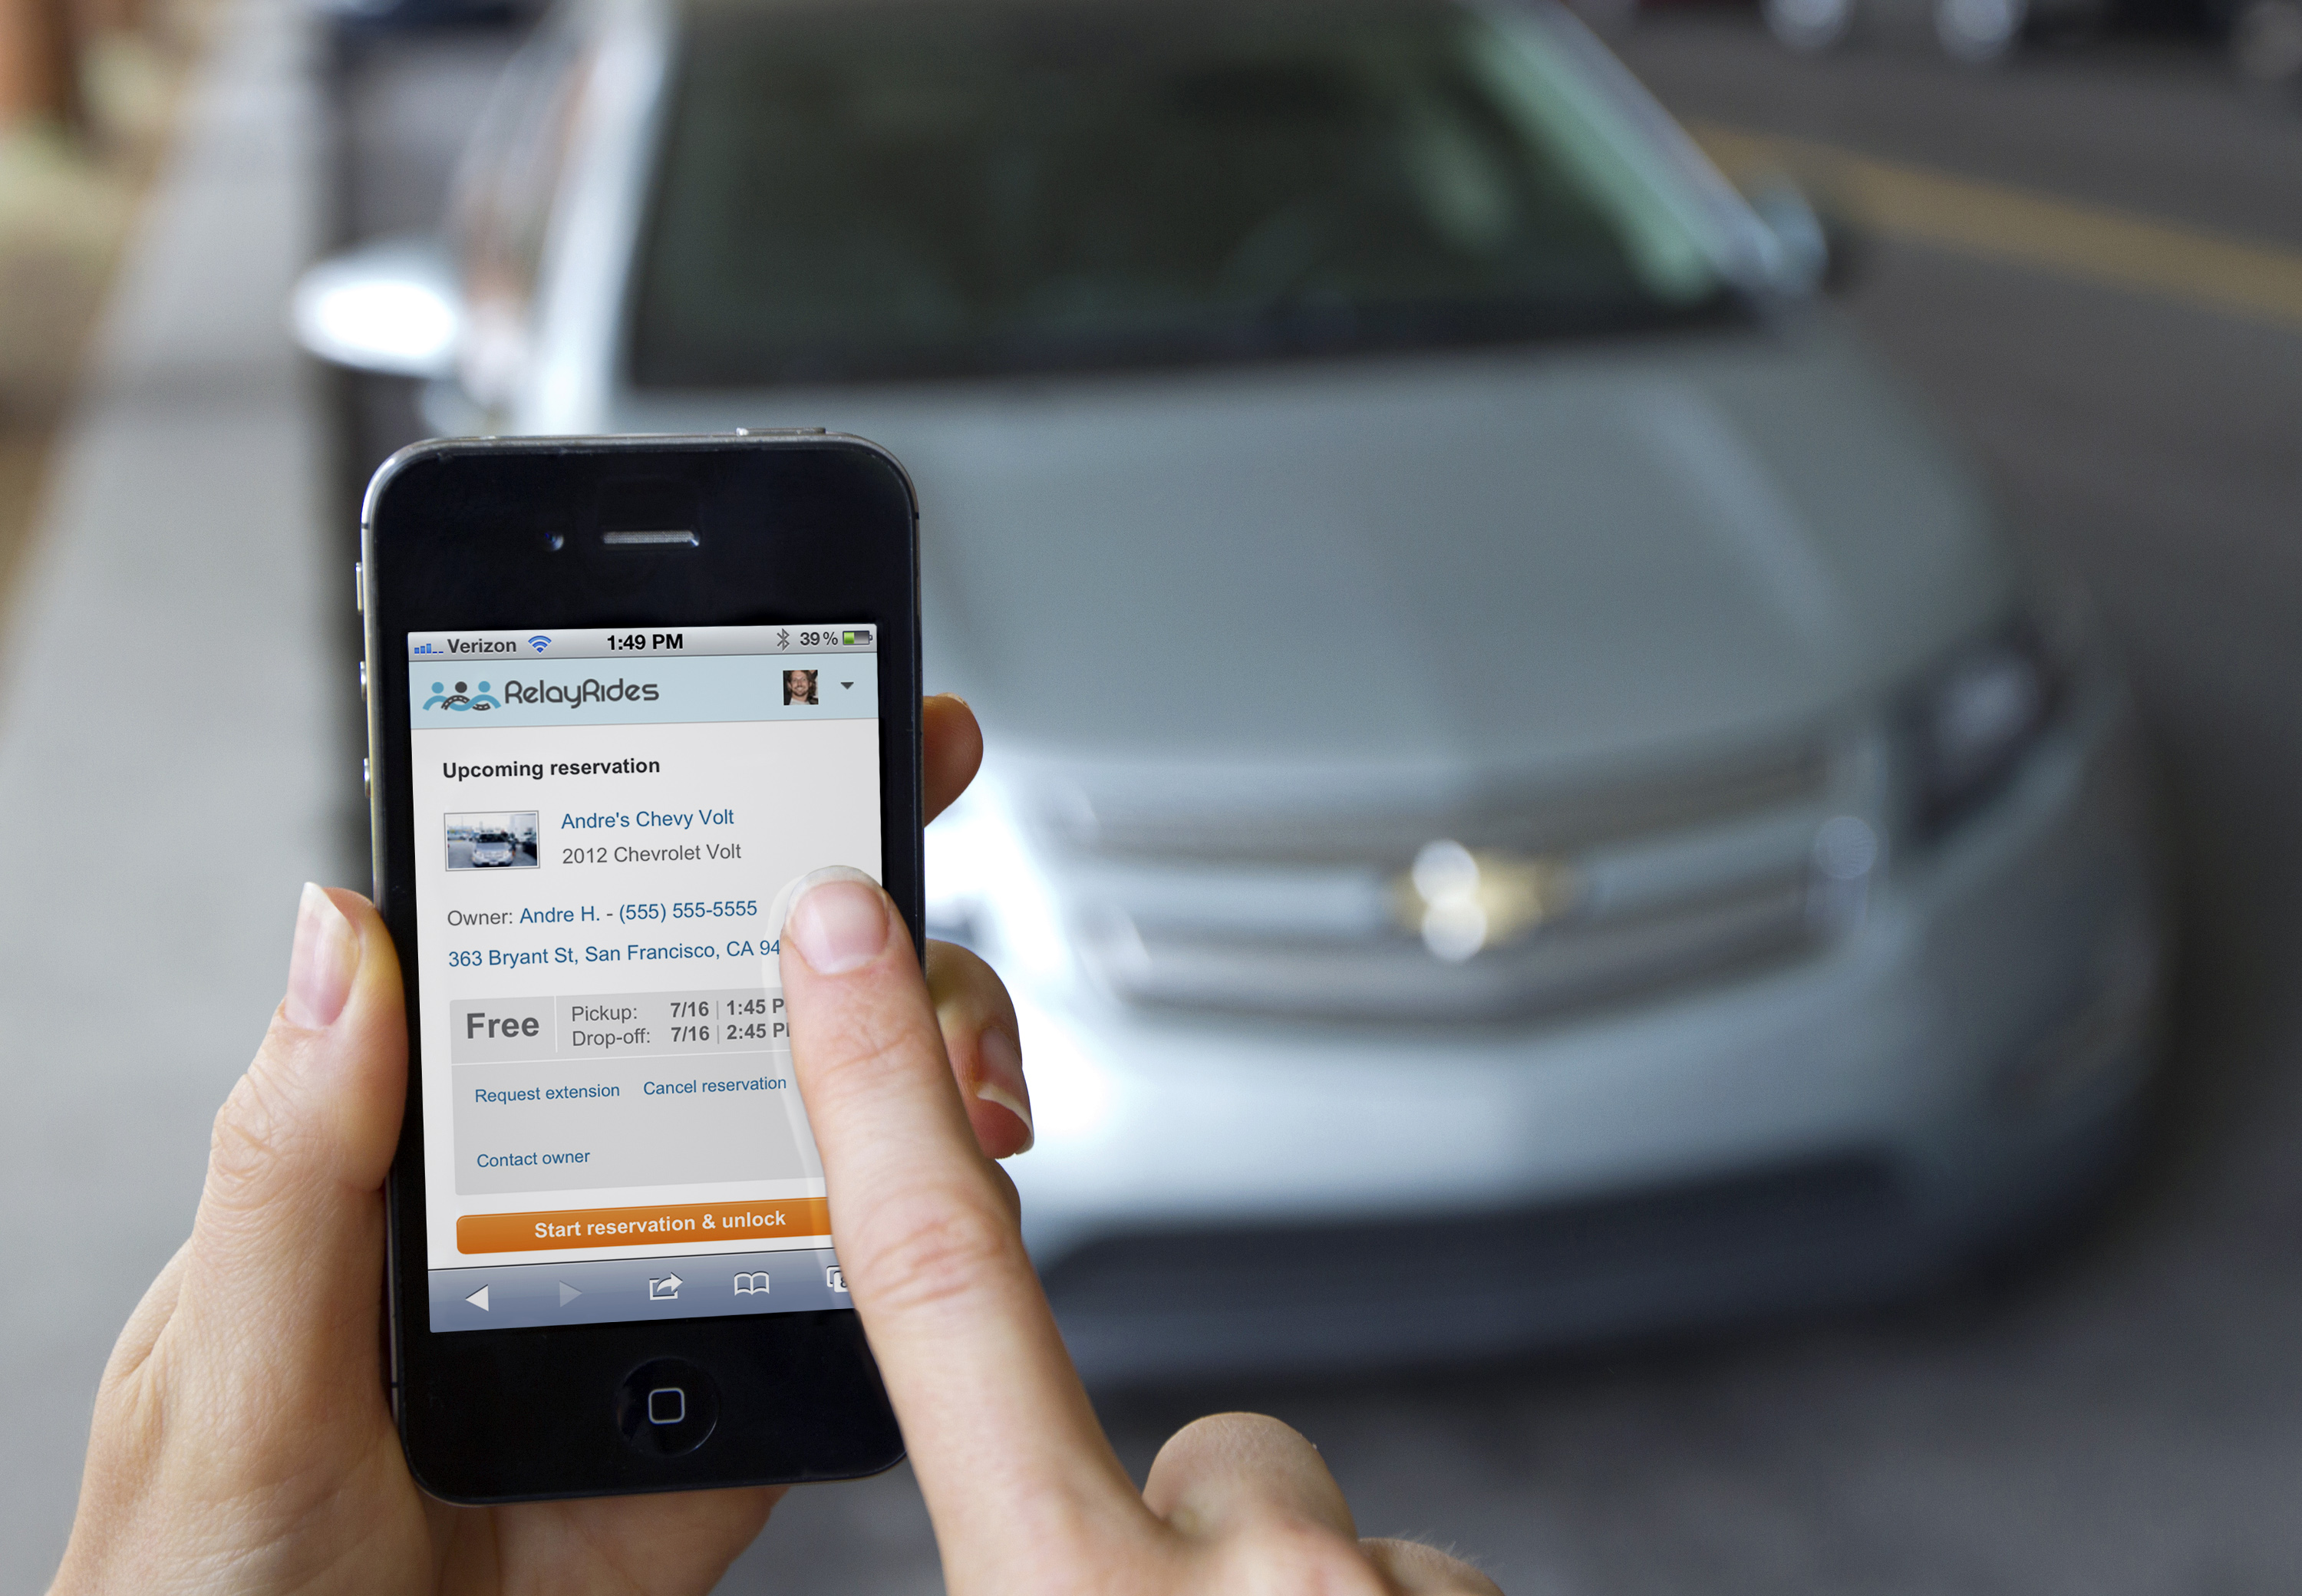 General Motors OnStar Relay Rides car-sharing app for iPhone